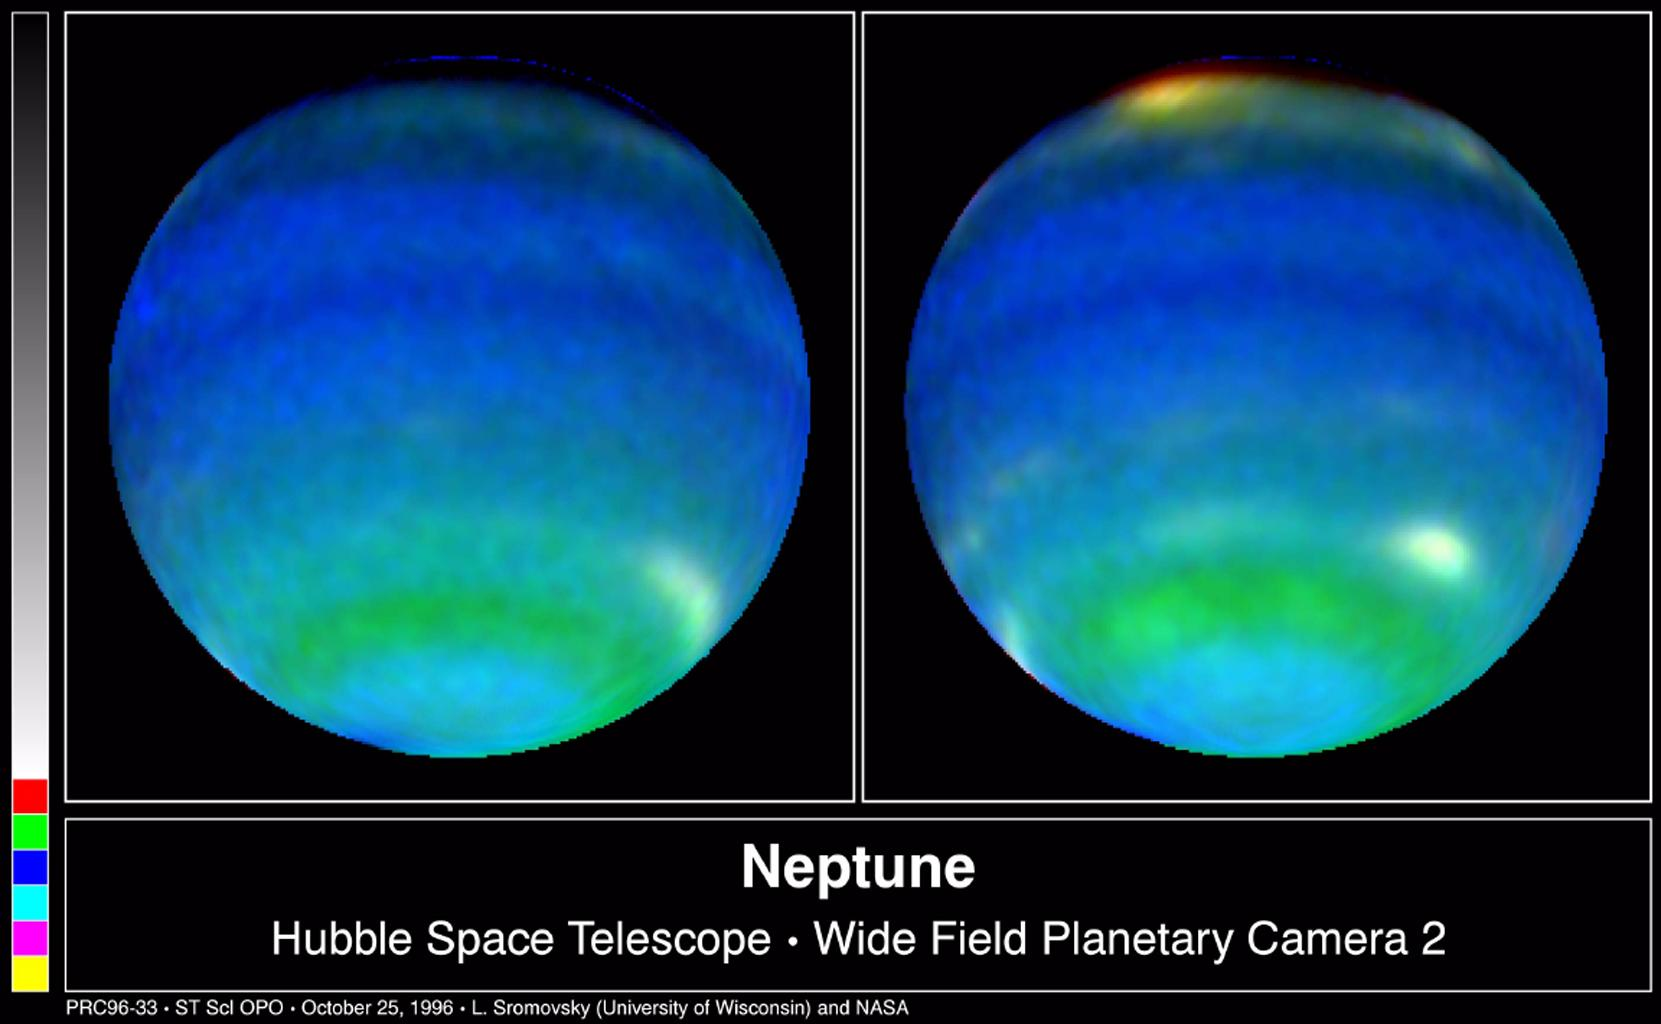 These two NASA Hubble Space Telescope images provide views of weather on opposite hemispheres of Neptune. Taken Aug. 13, 1996; these composite images blend information from different wavelengths to bring out features of Neptune's blustery weather.